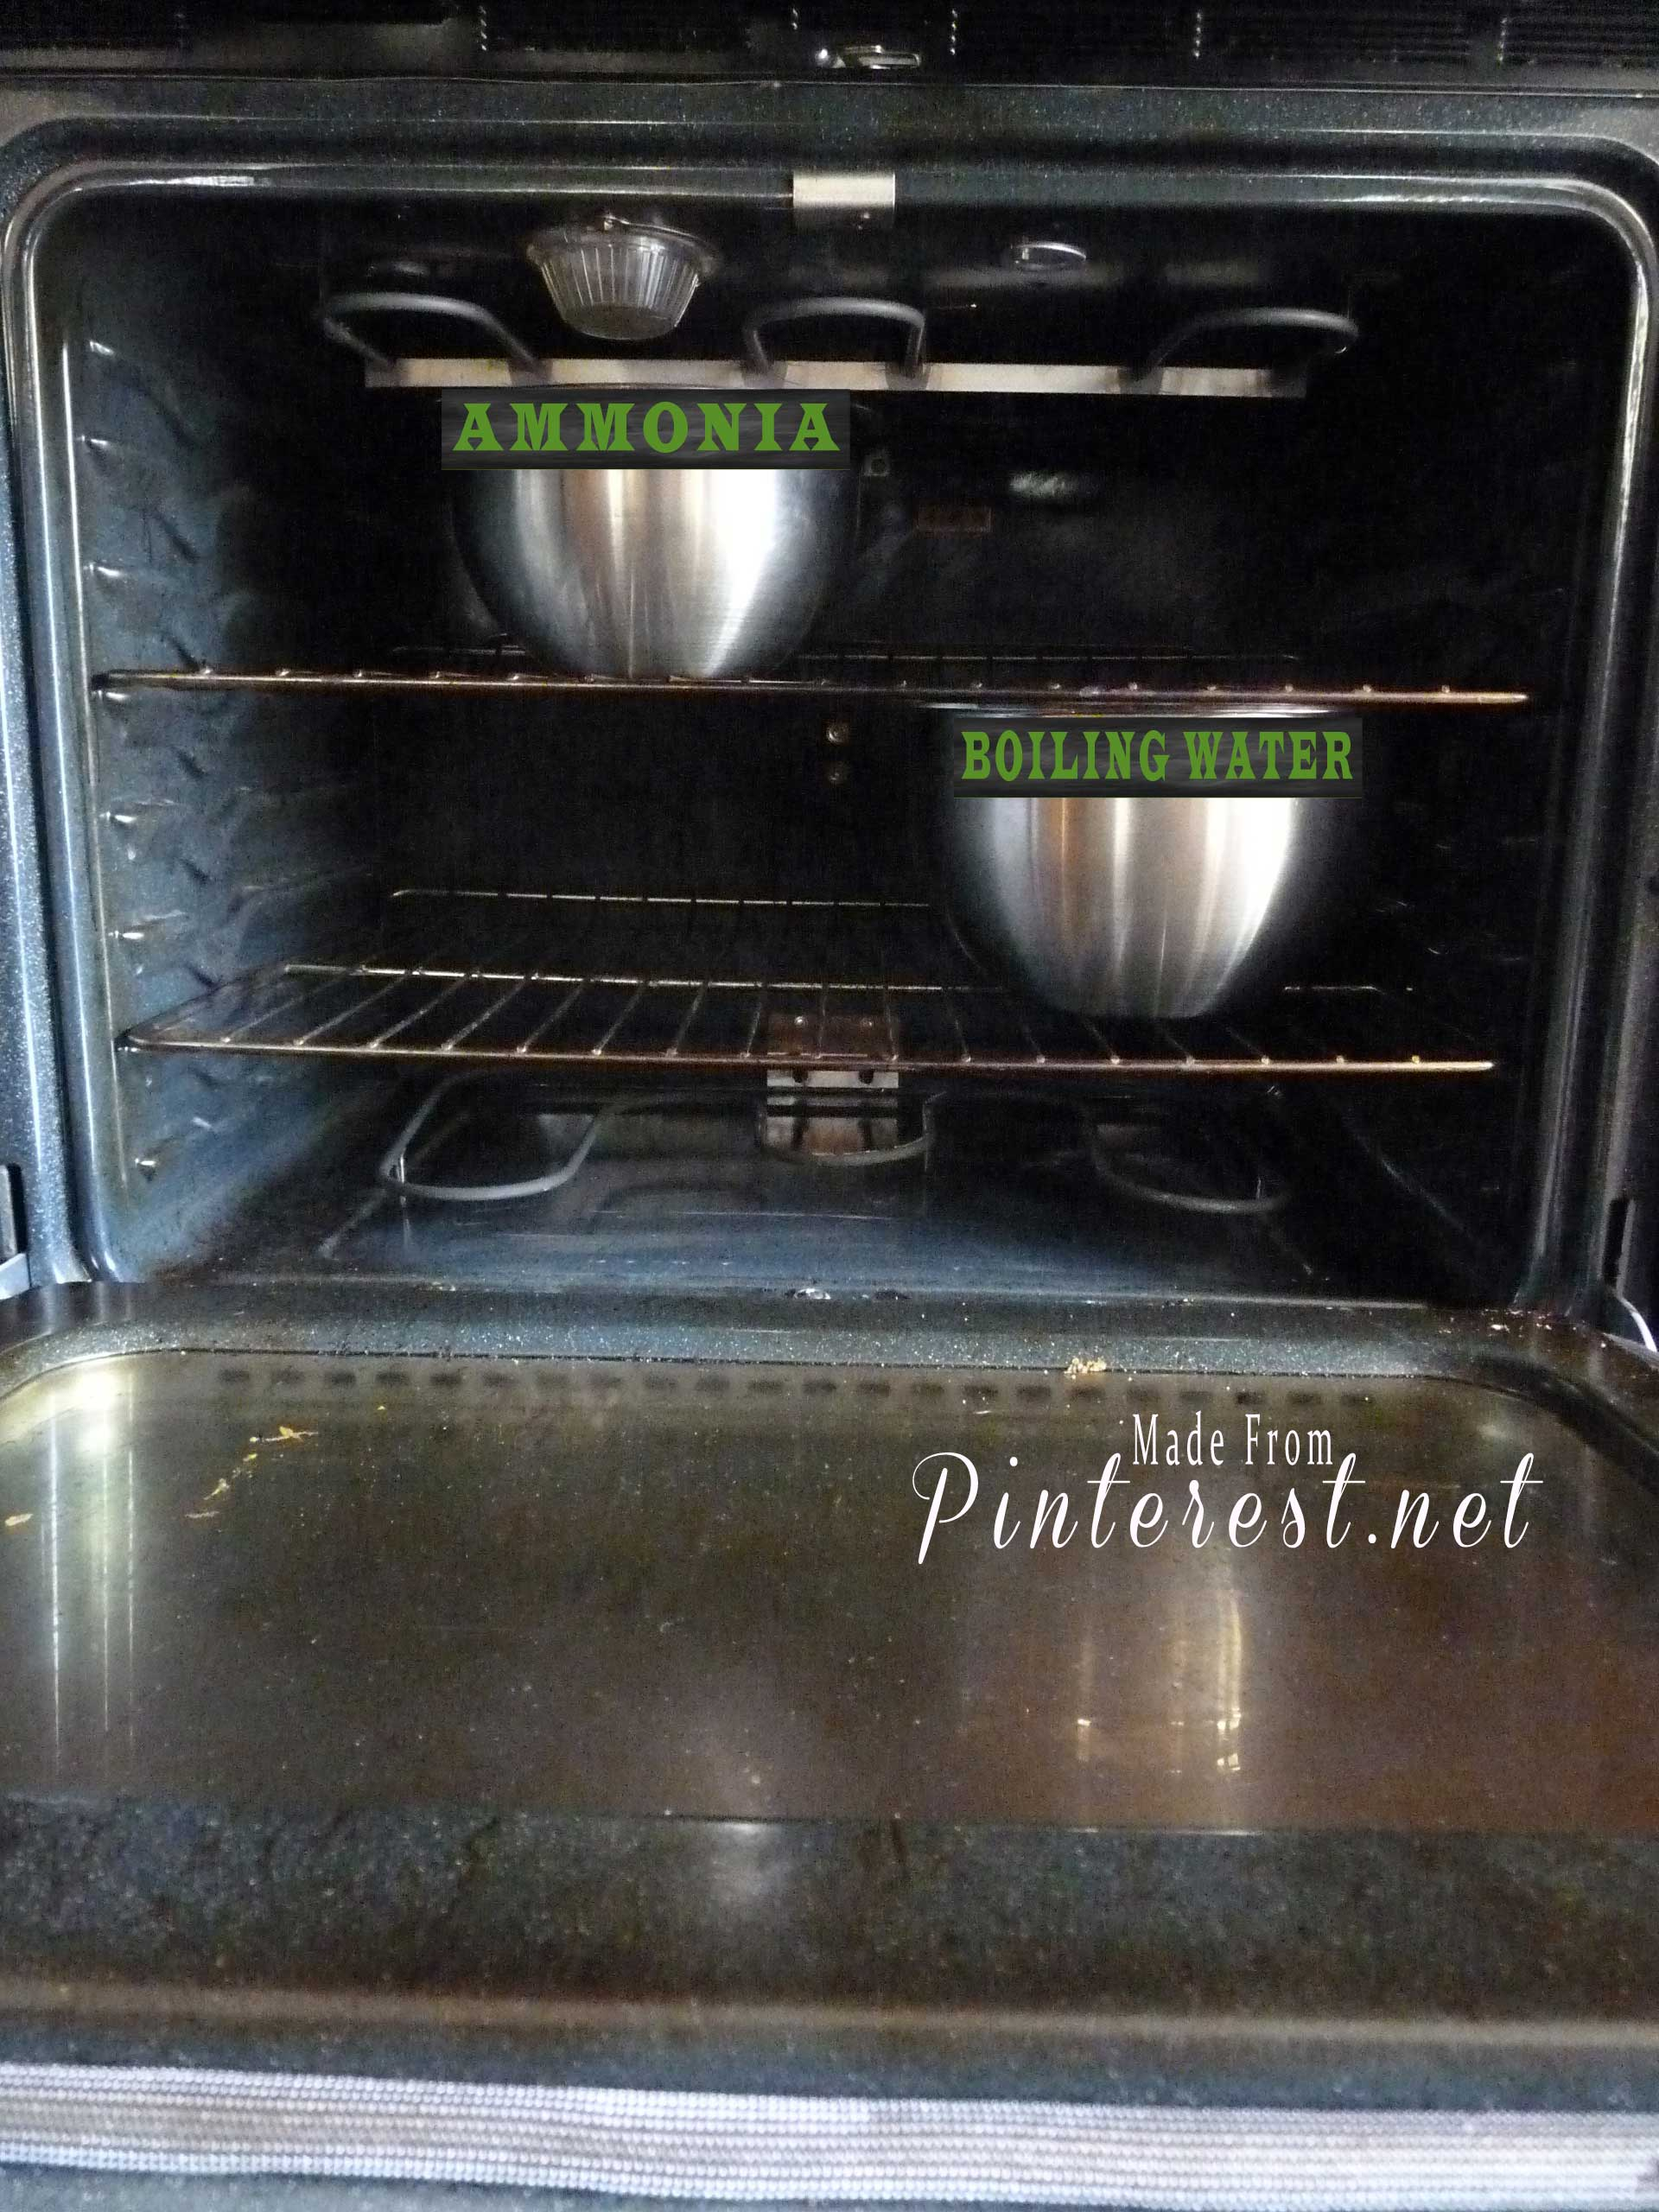 Oven Cleaning The Magic Way Made From Pinterest